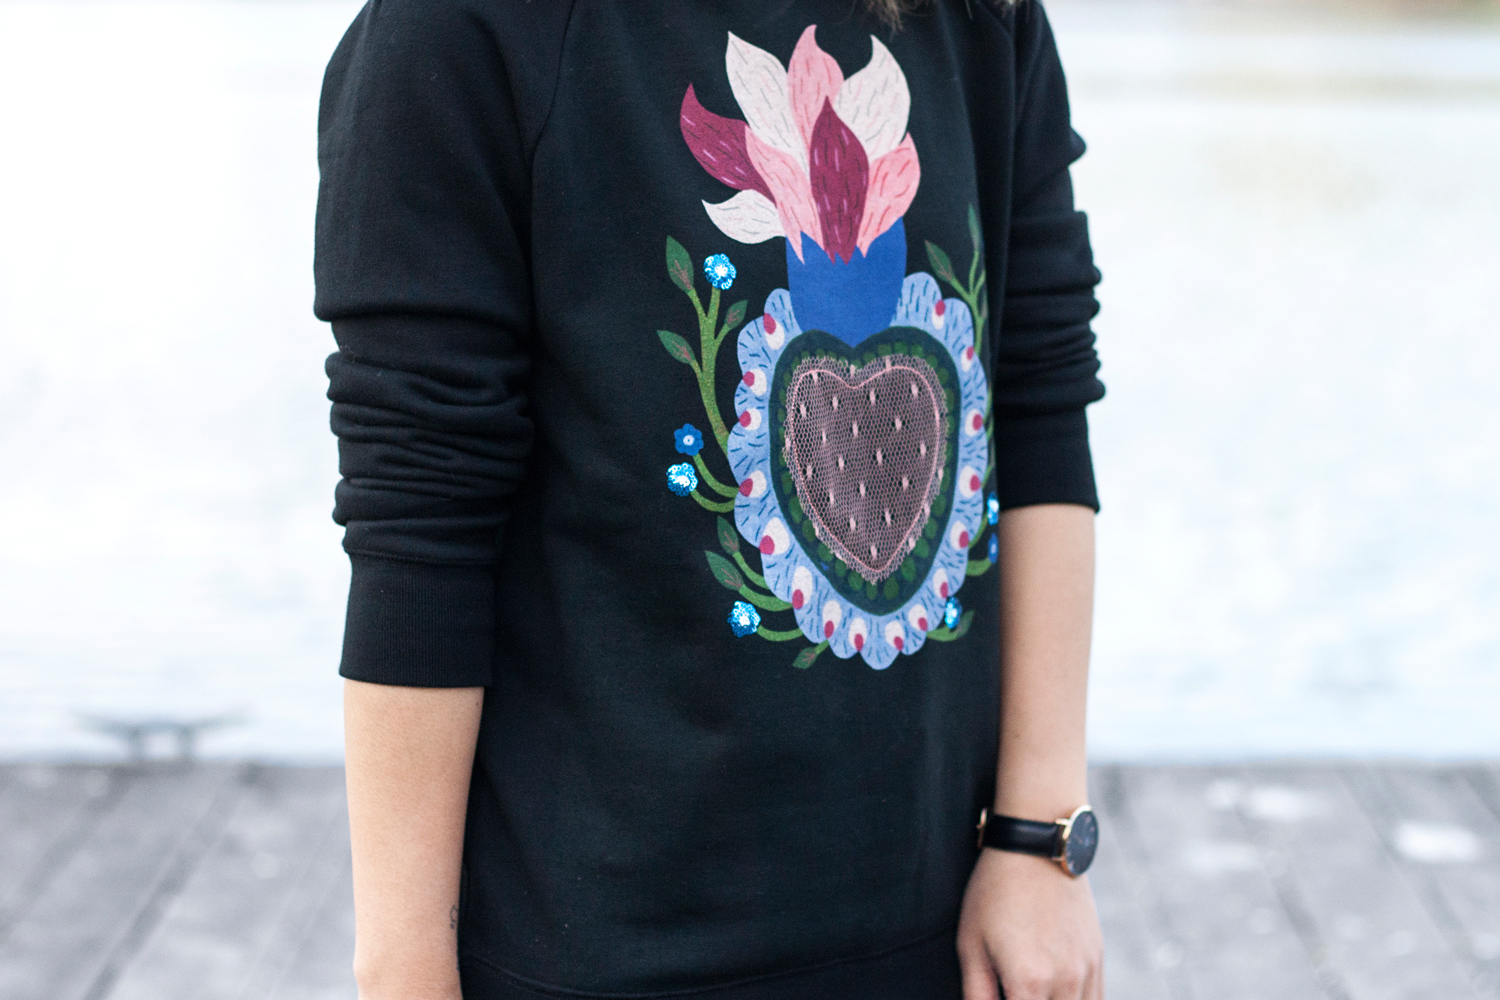 08valentino-graphic-sweatshirt-fashion-style